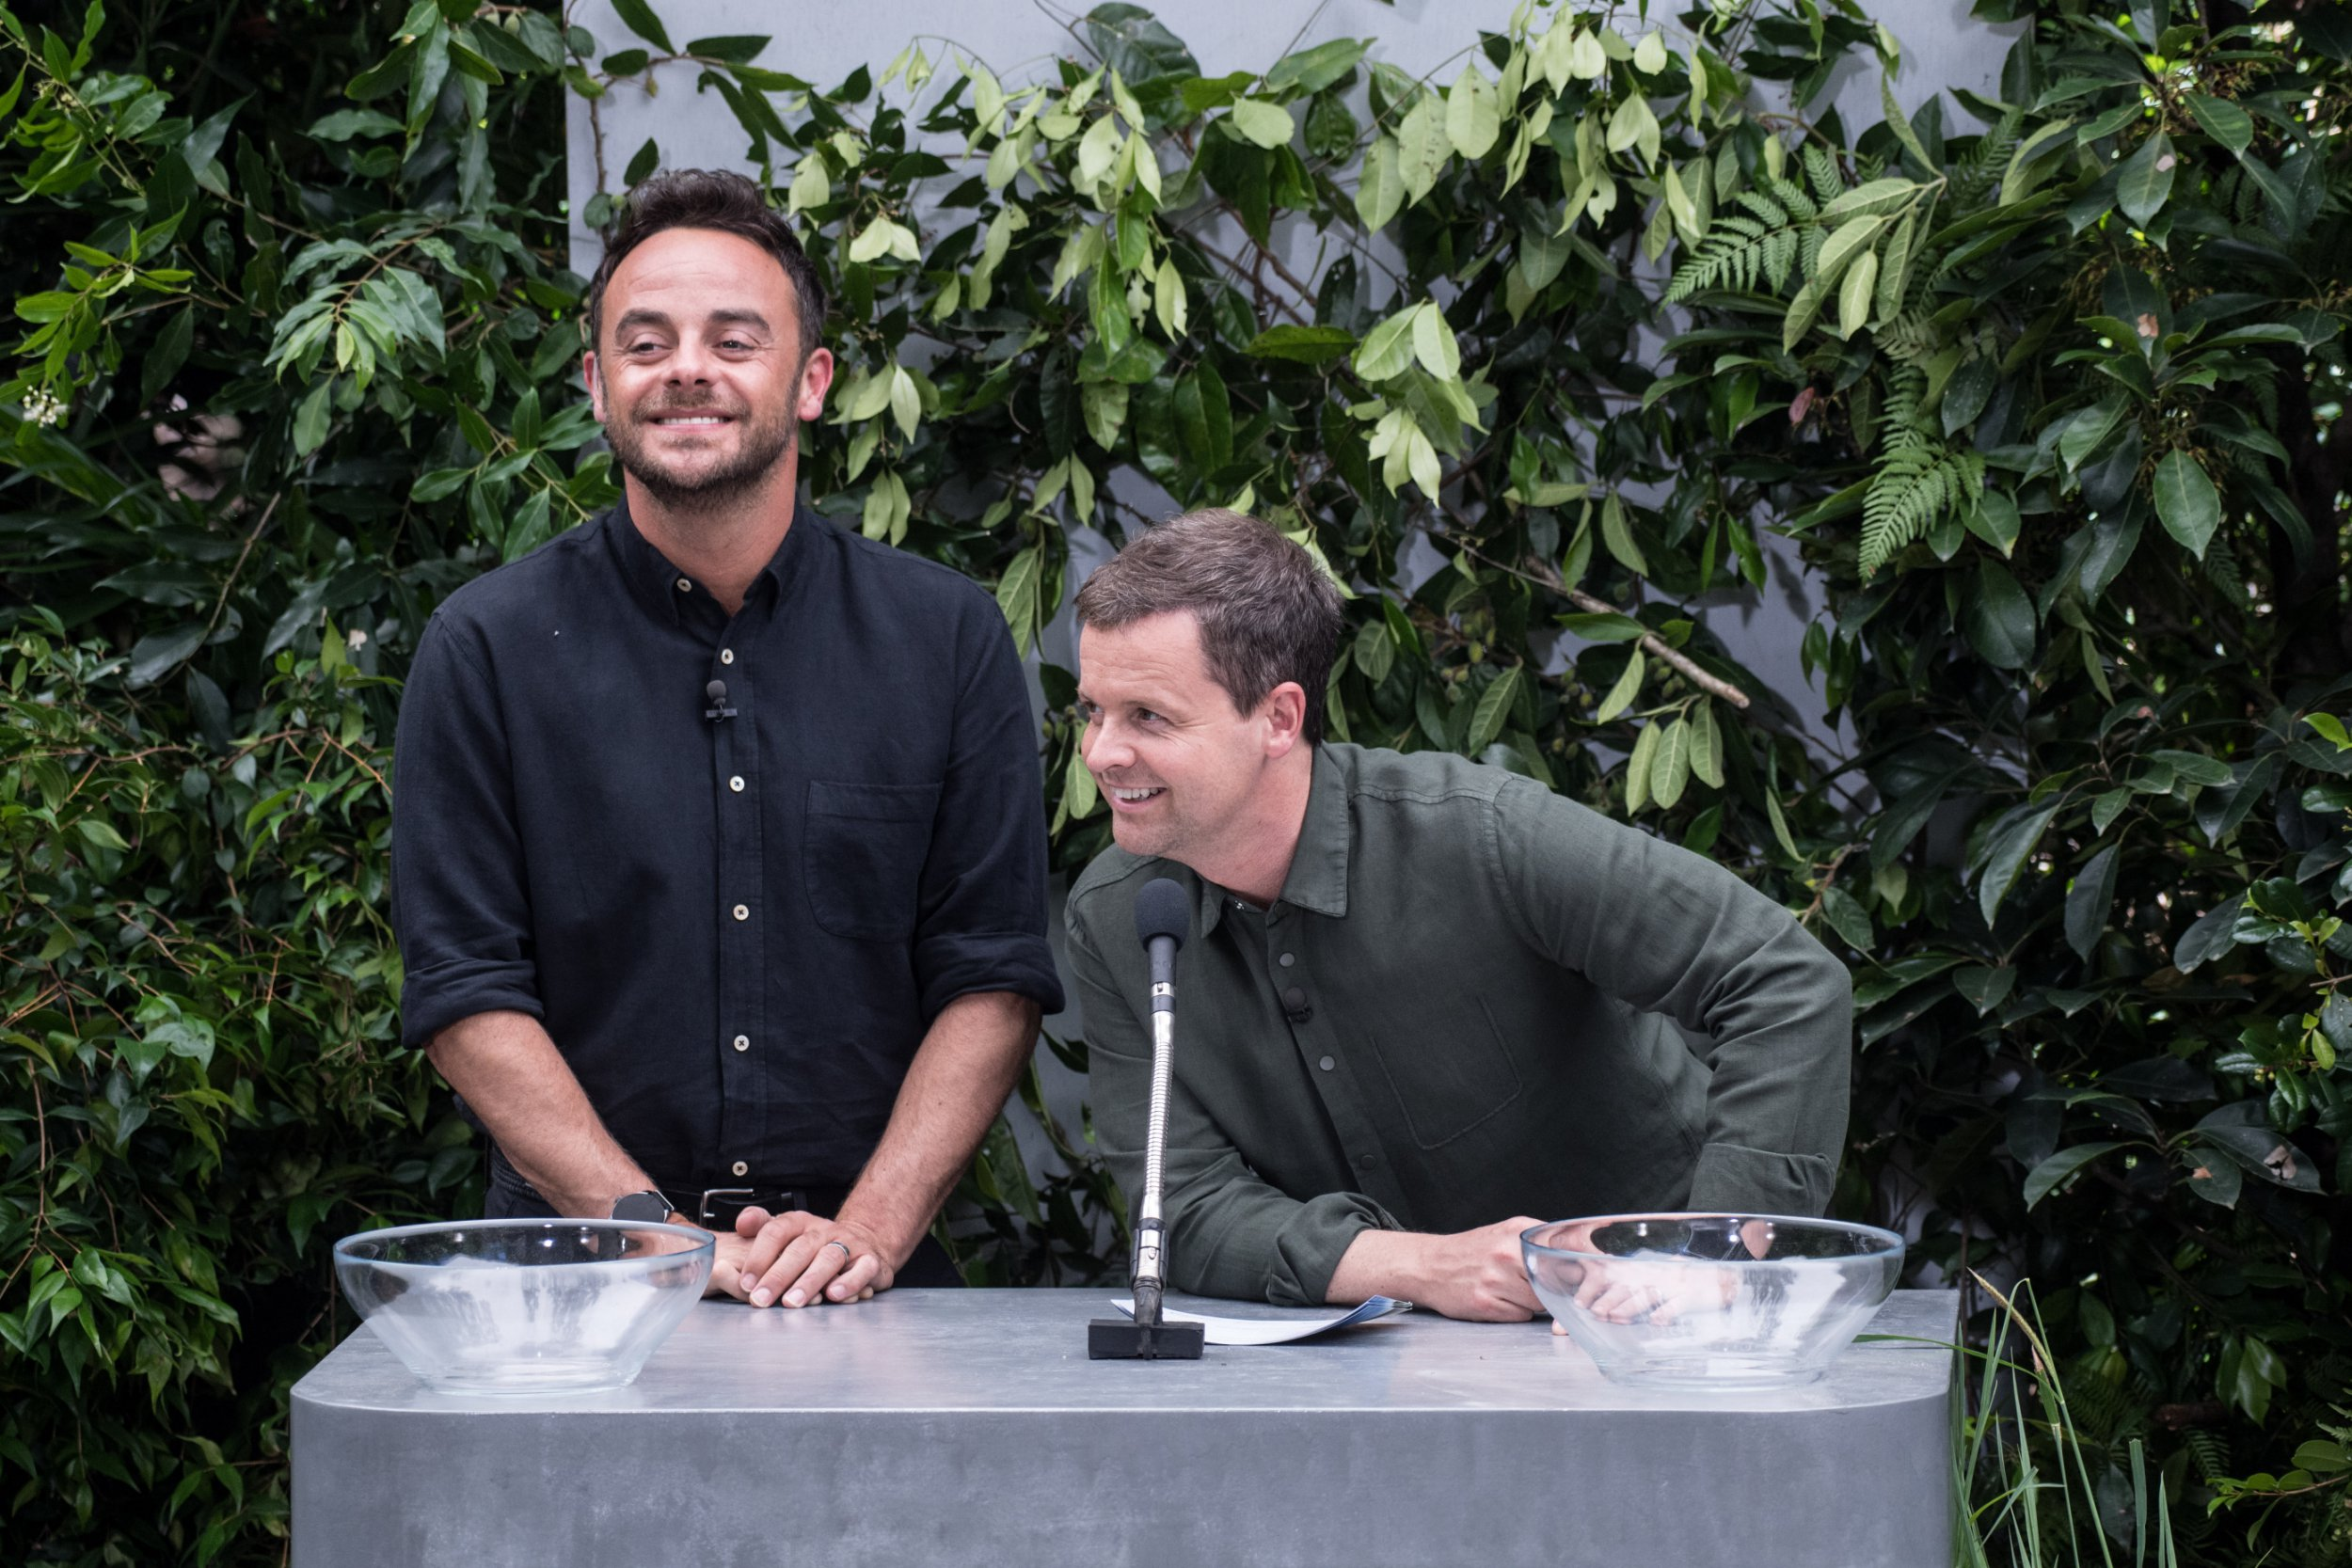 Editorial use only Mandatory Credit: Photo by James Gourley/ITV/REX/Shutterstock (9263836d) Bushtucker Trial: Deadly Departure Lounge - Anthony McPartlin and Declan Donnelly 'I'm a Celebrity... Get Me Out of Here!' TV Show, Series 17, Australia - 07 Dec 2017